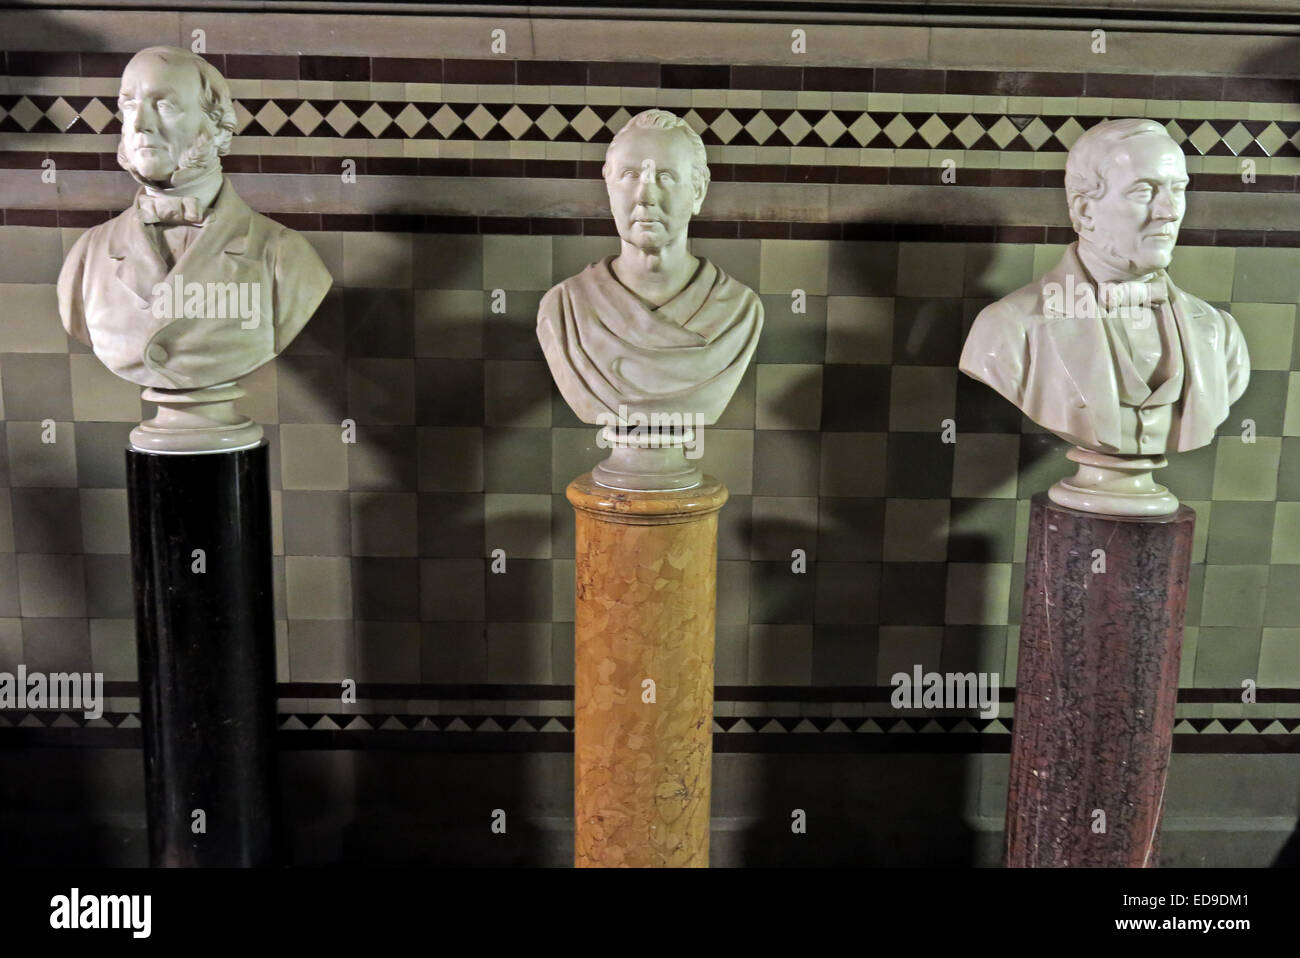 Heads of statues in Manchester Town hall, Albert Square, England, UK - Stock Image